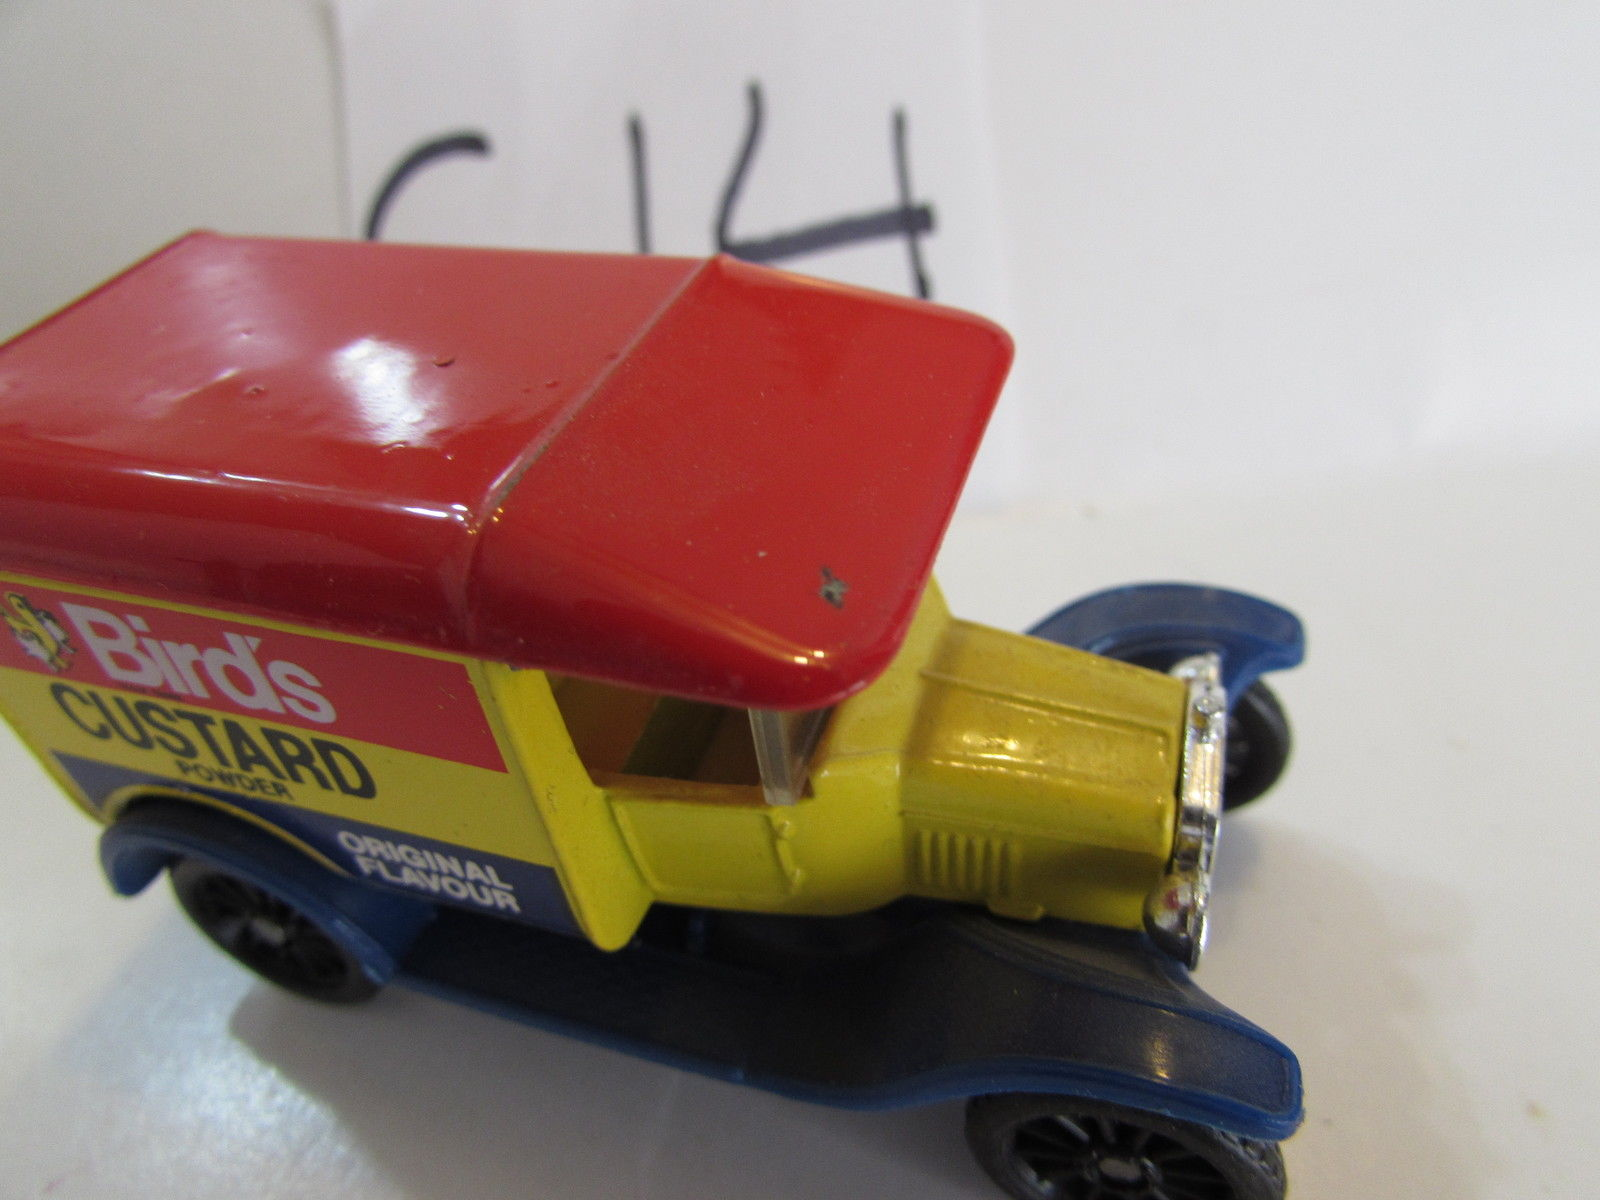 MATCHBOX 1921 MODEL T FORD MADE IN MACAU LOOSE SCALE 1:52